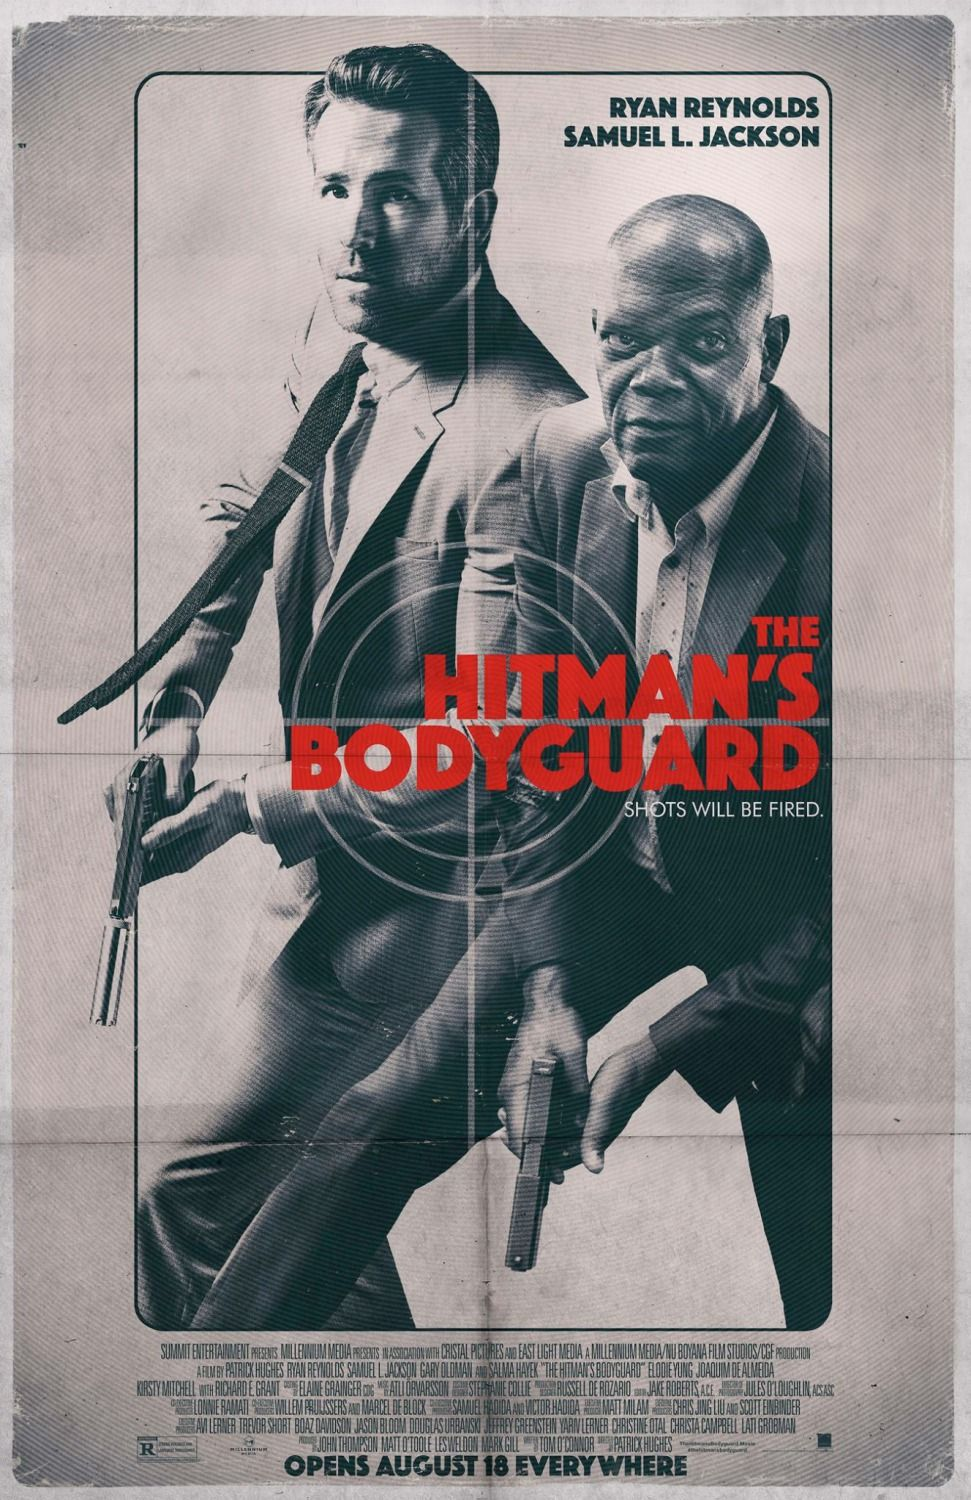 Return to the main poster page for The Hitman's Bodyguard